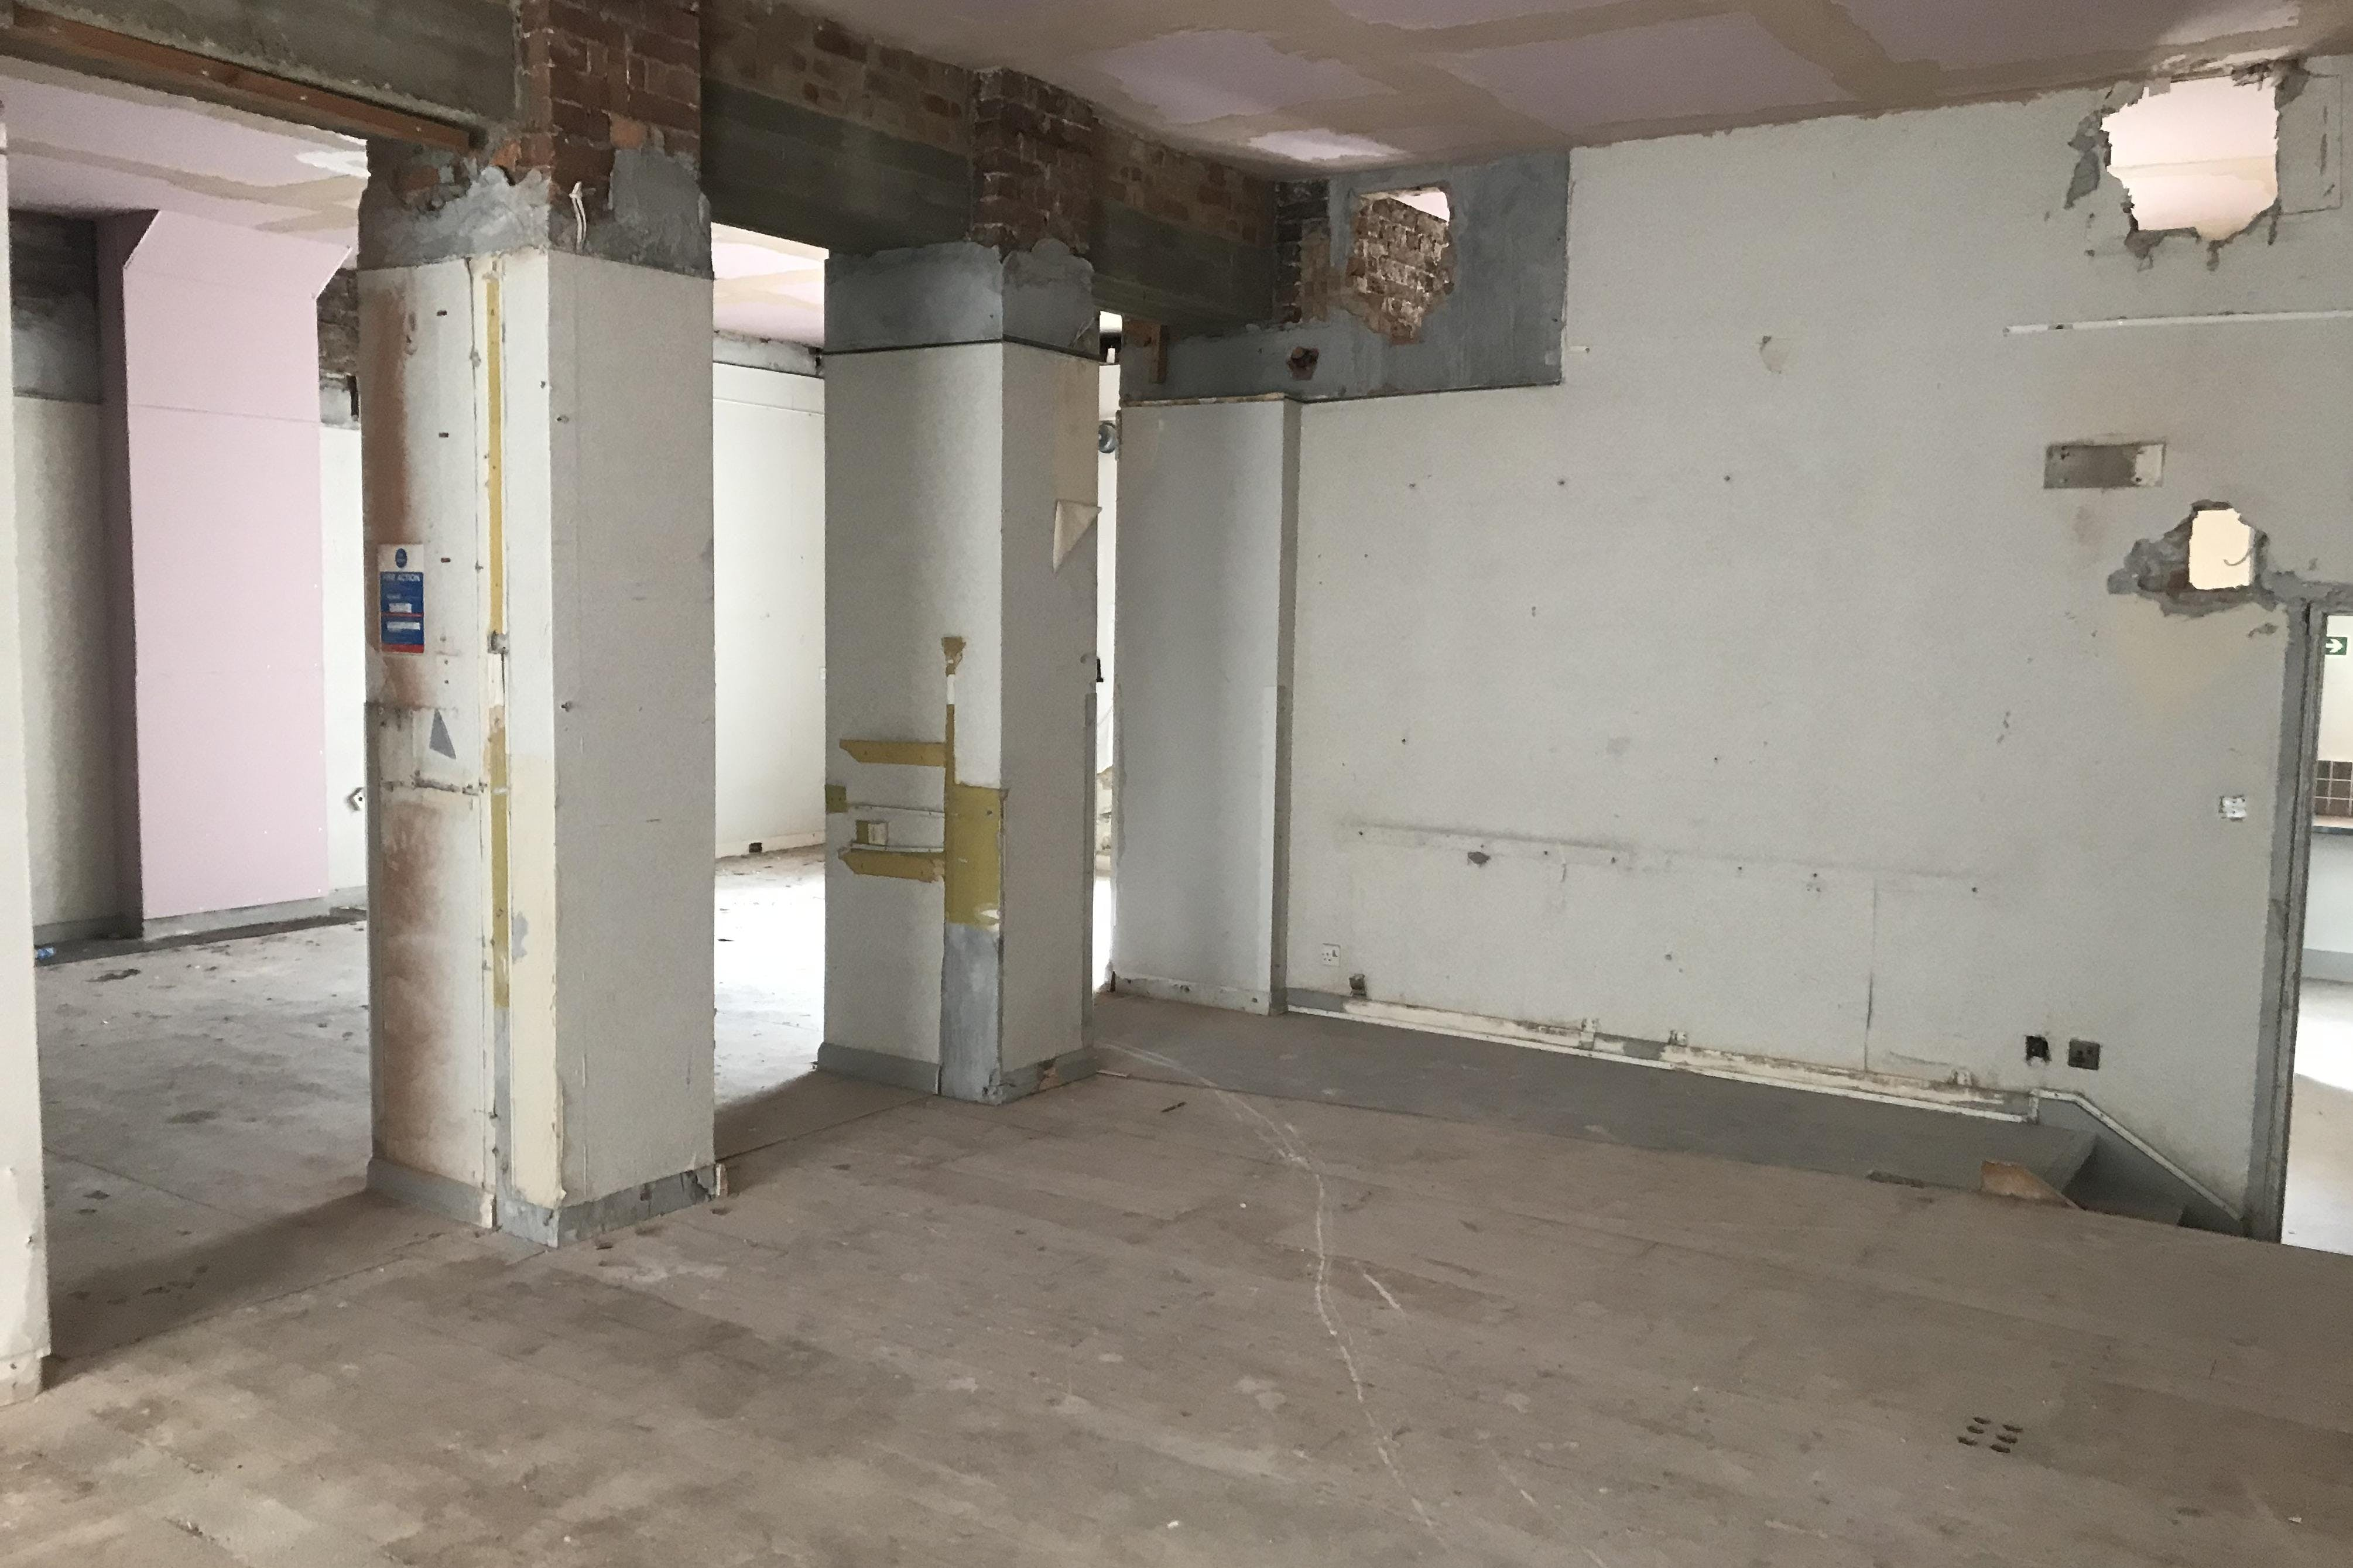 22-26 Norman Road, St Leonards On Sea, Retail To Let - IMG_0948.JPG